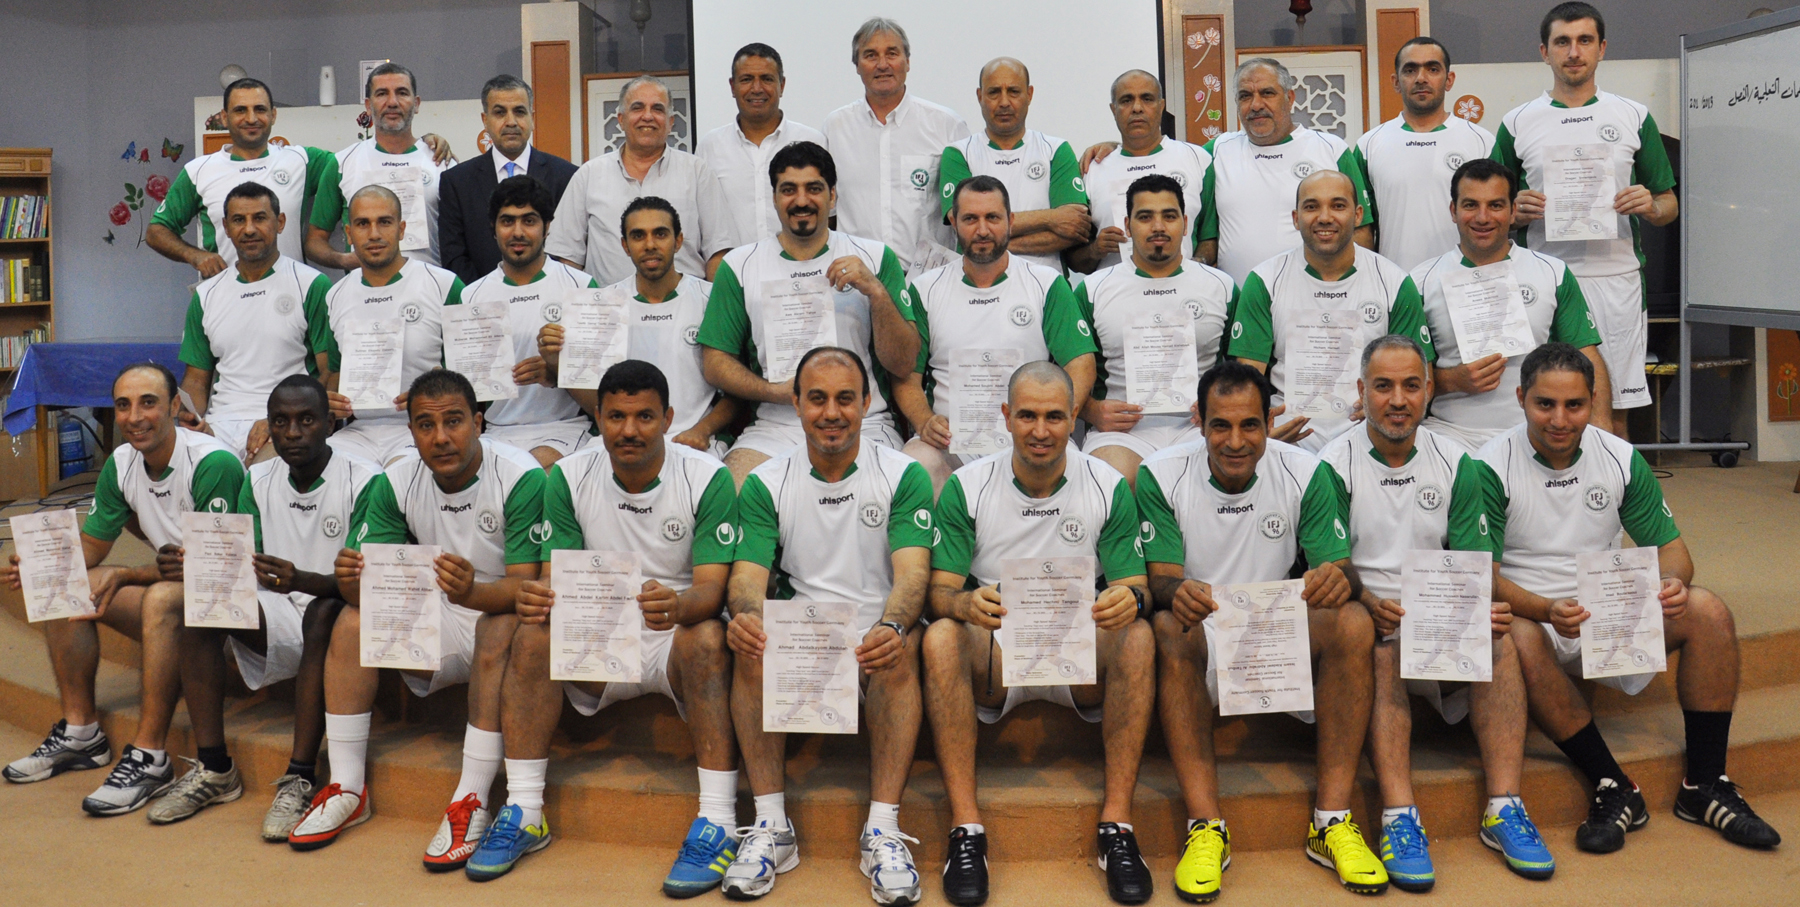 Seminar for Soccer Coaches in Ajman 2013 - Certificates for the coaches